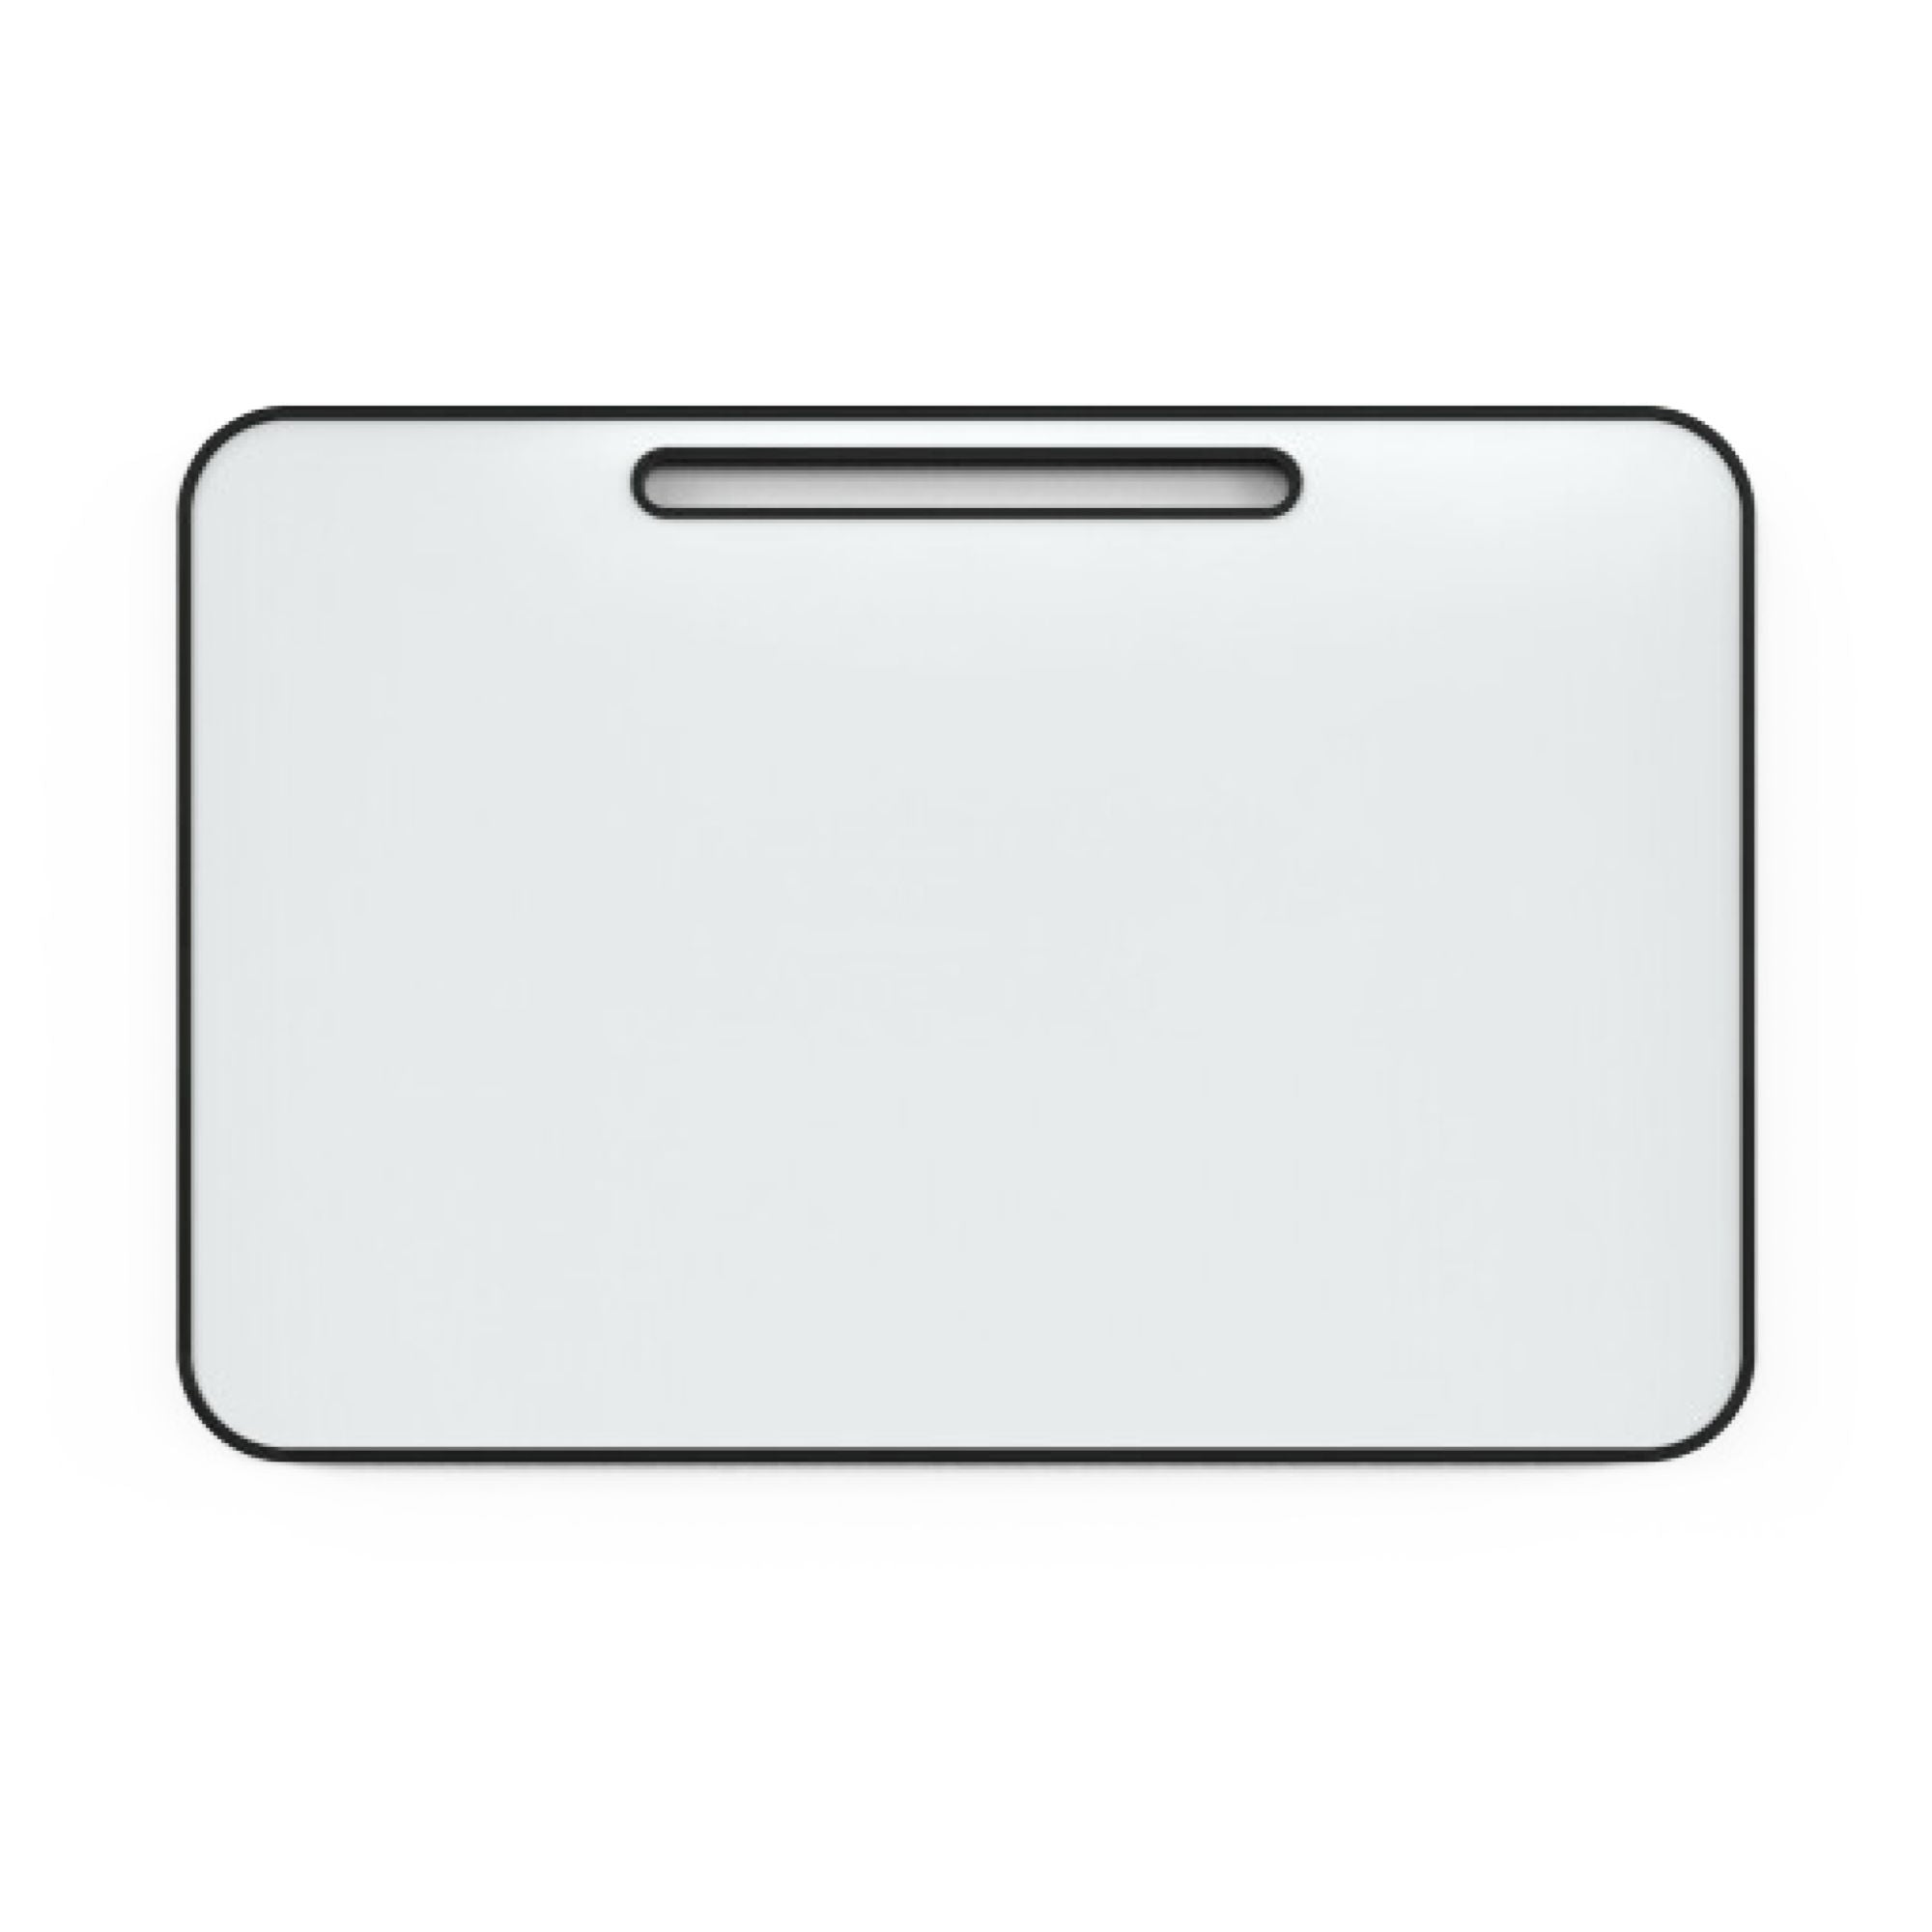 Lintex Note Lightweight Portable Whiteboard 120.5X80.5CM